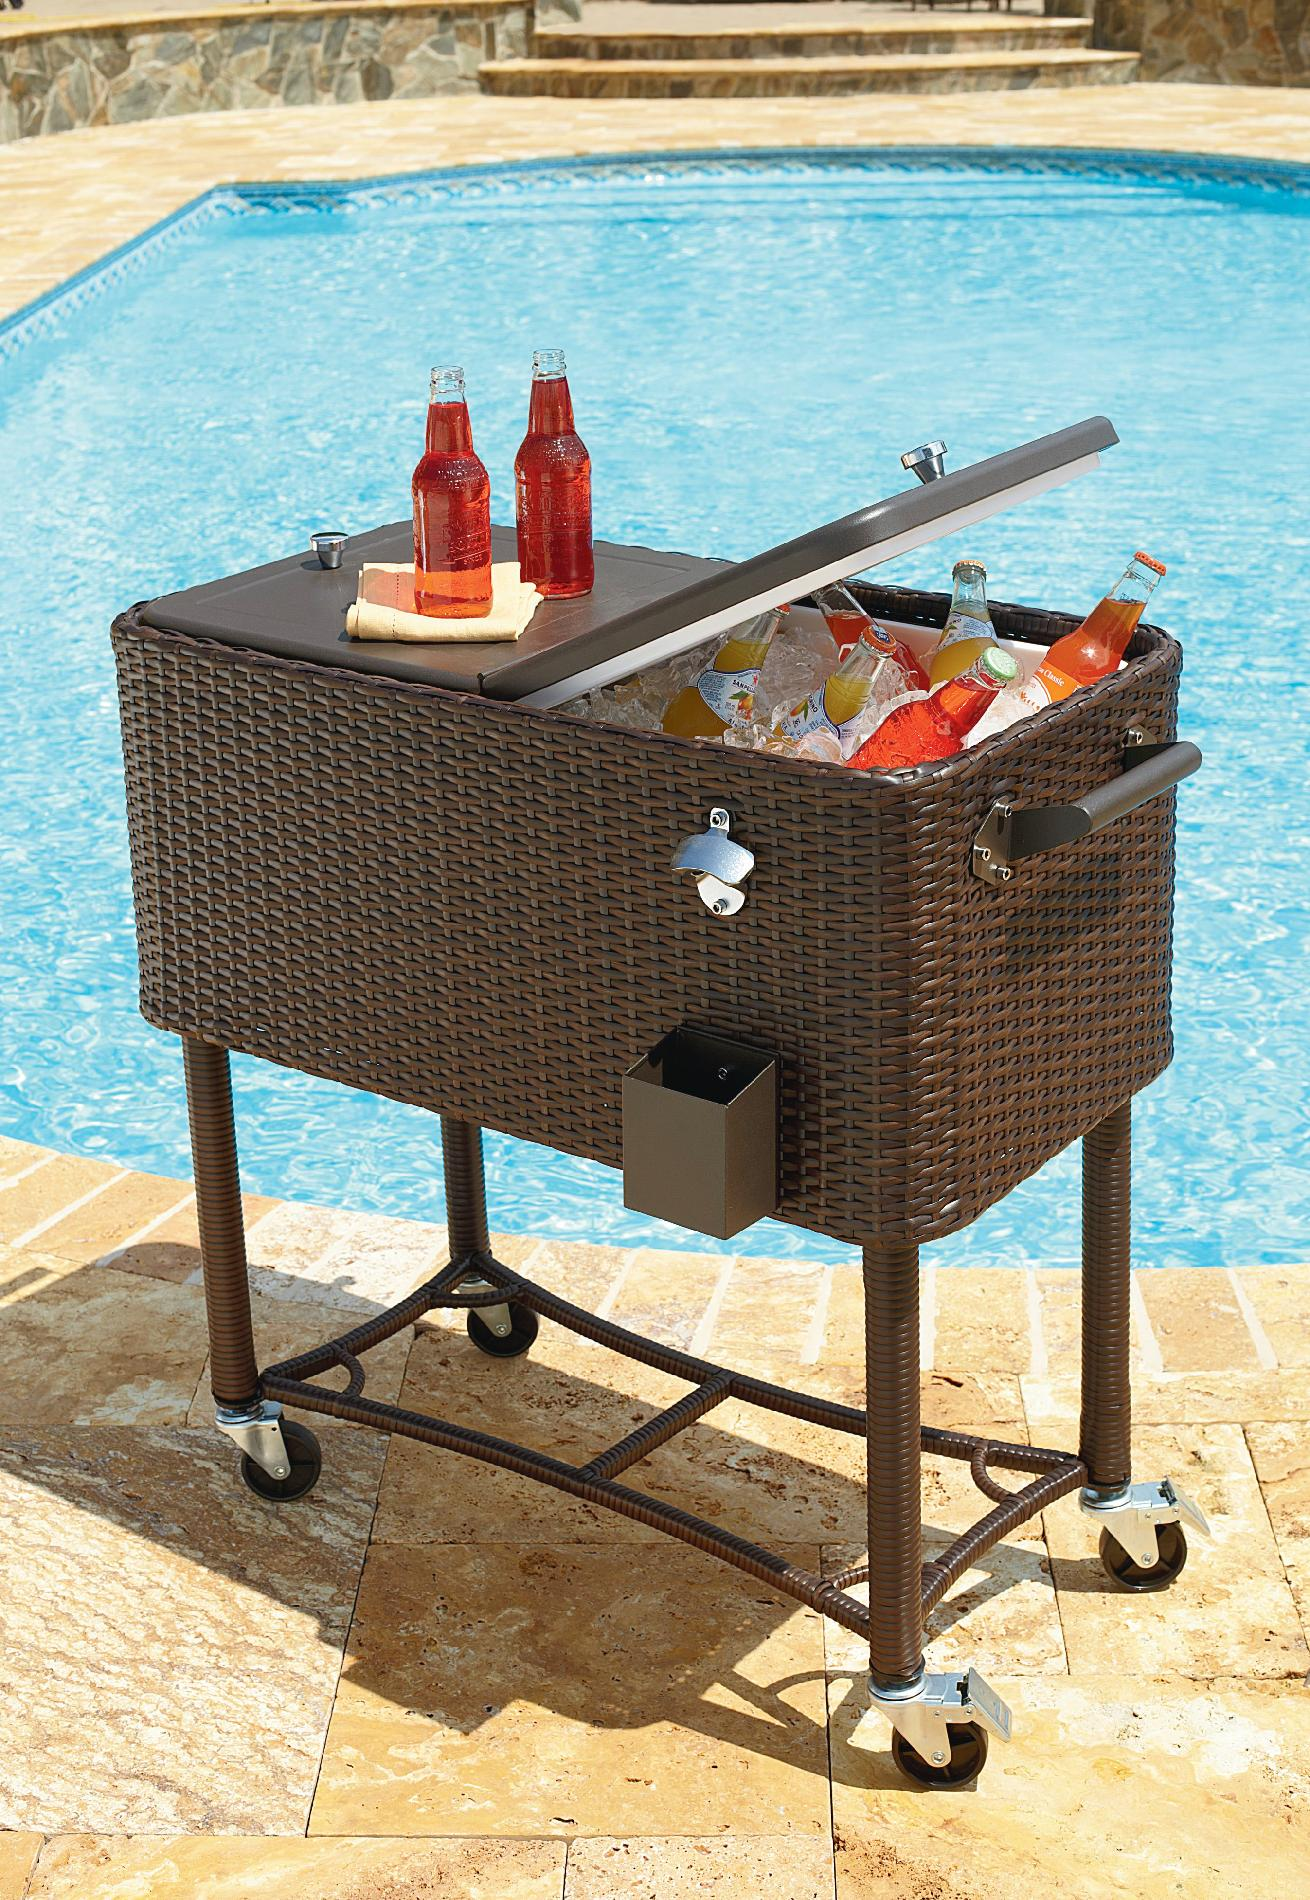 Garden Oasis 80qt Wicker Patio Cooler - Outdoor Living ... on Outdoor Living Wicker  id=39521